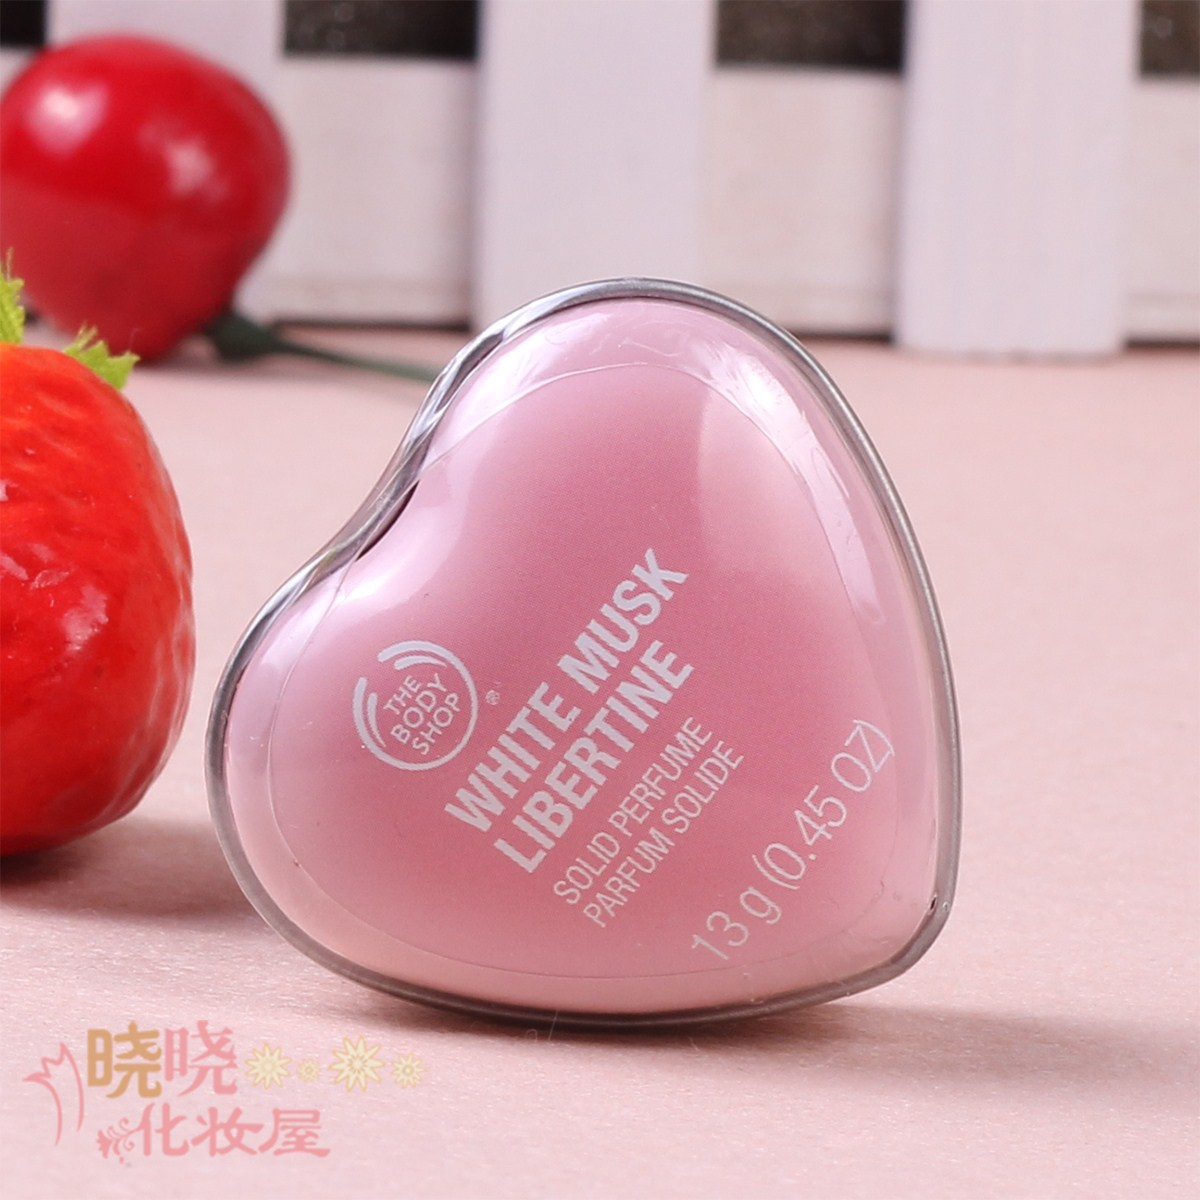 Духи The body shop  13g купить